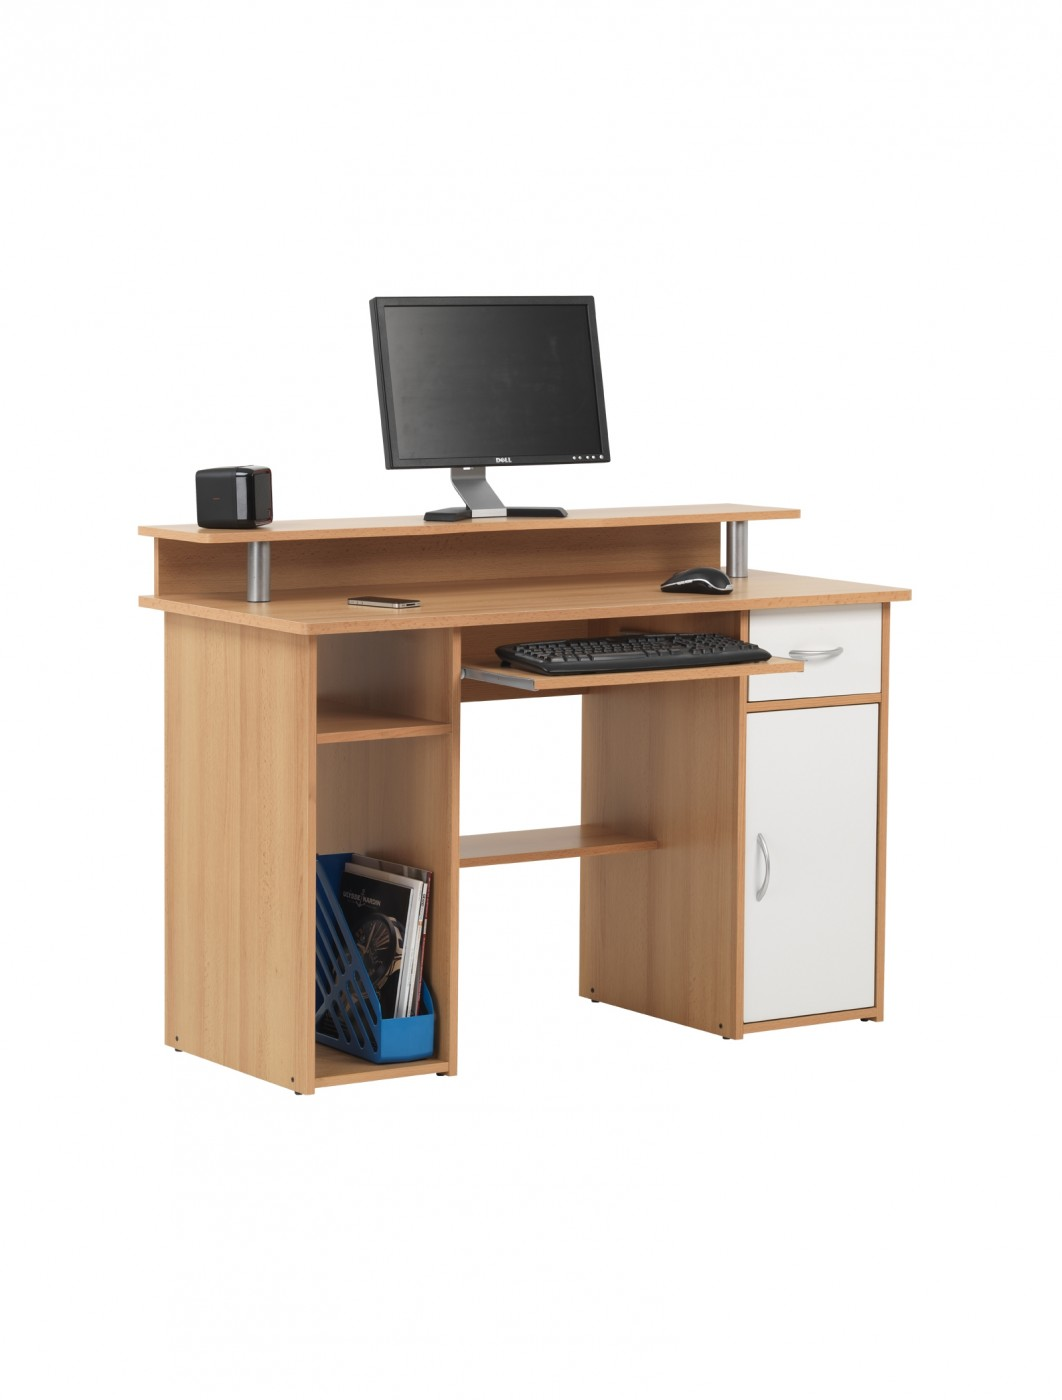 Marvelous photograph of AW12362 Alphason Albany Computer Desk AW12362 with #286EA0 color and 1062x1400 pixels